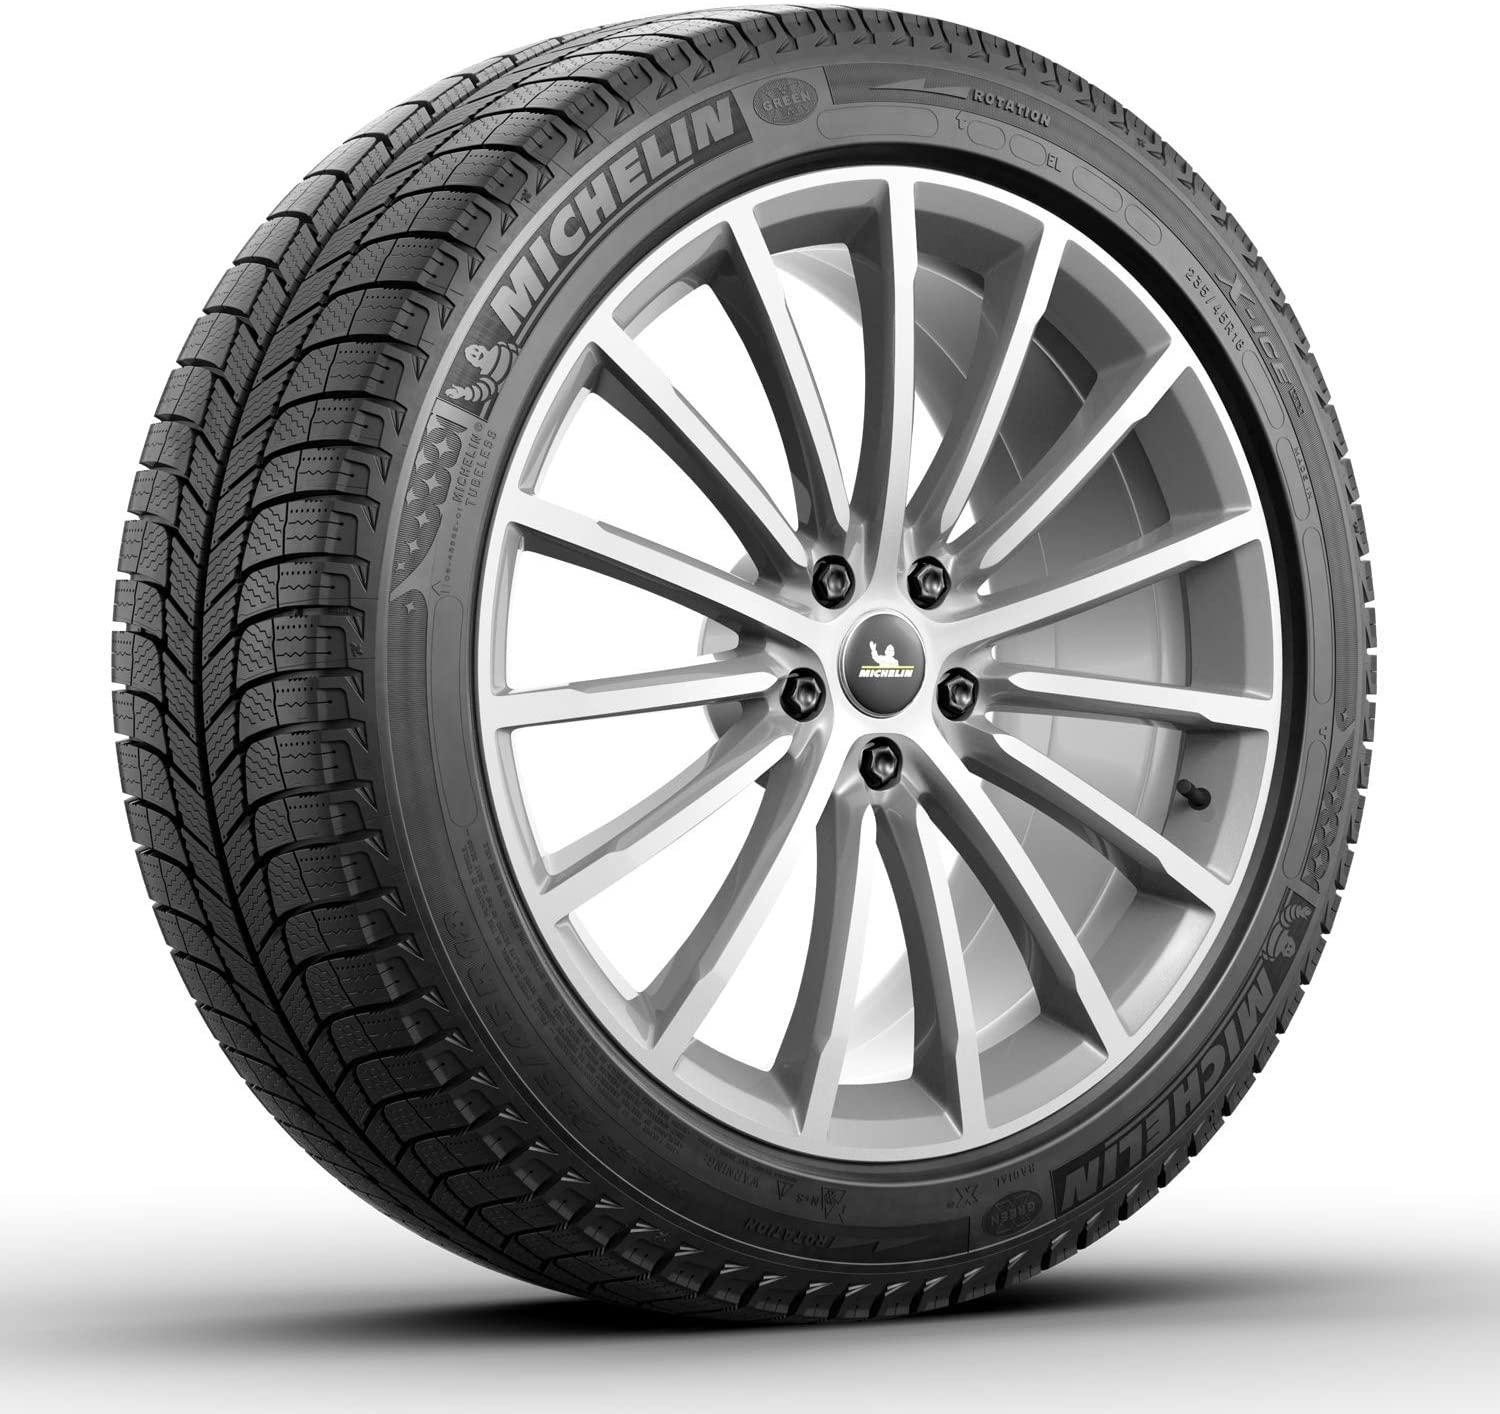 Michelin X-Ice Xi3 Winter Radial Tire 225//50R17//XL 98H